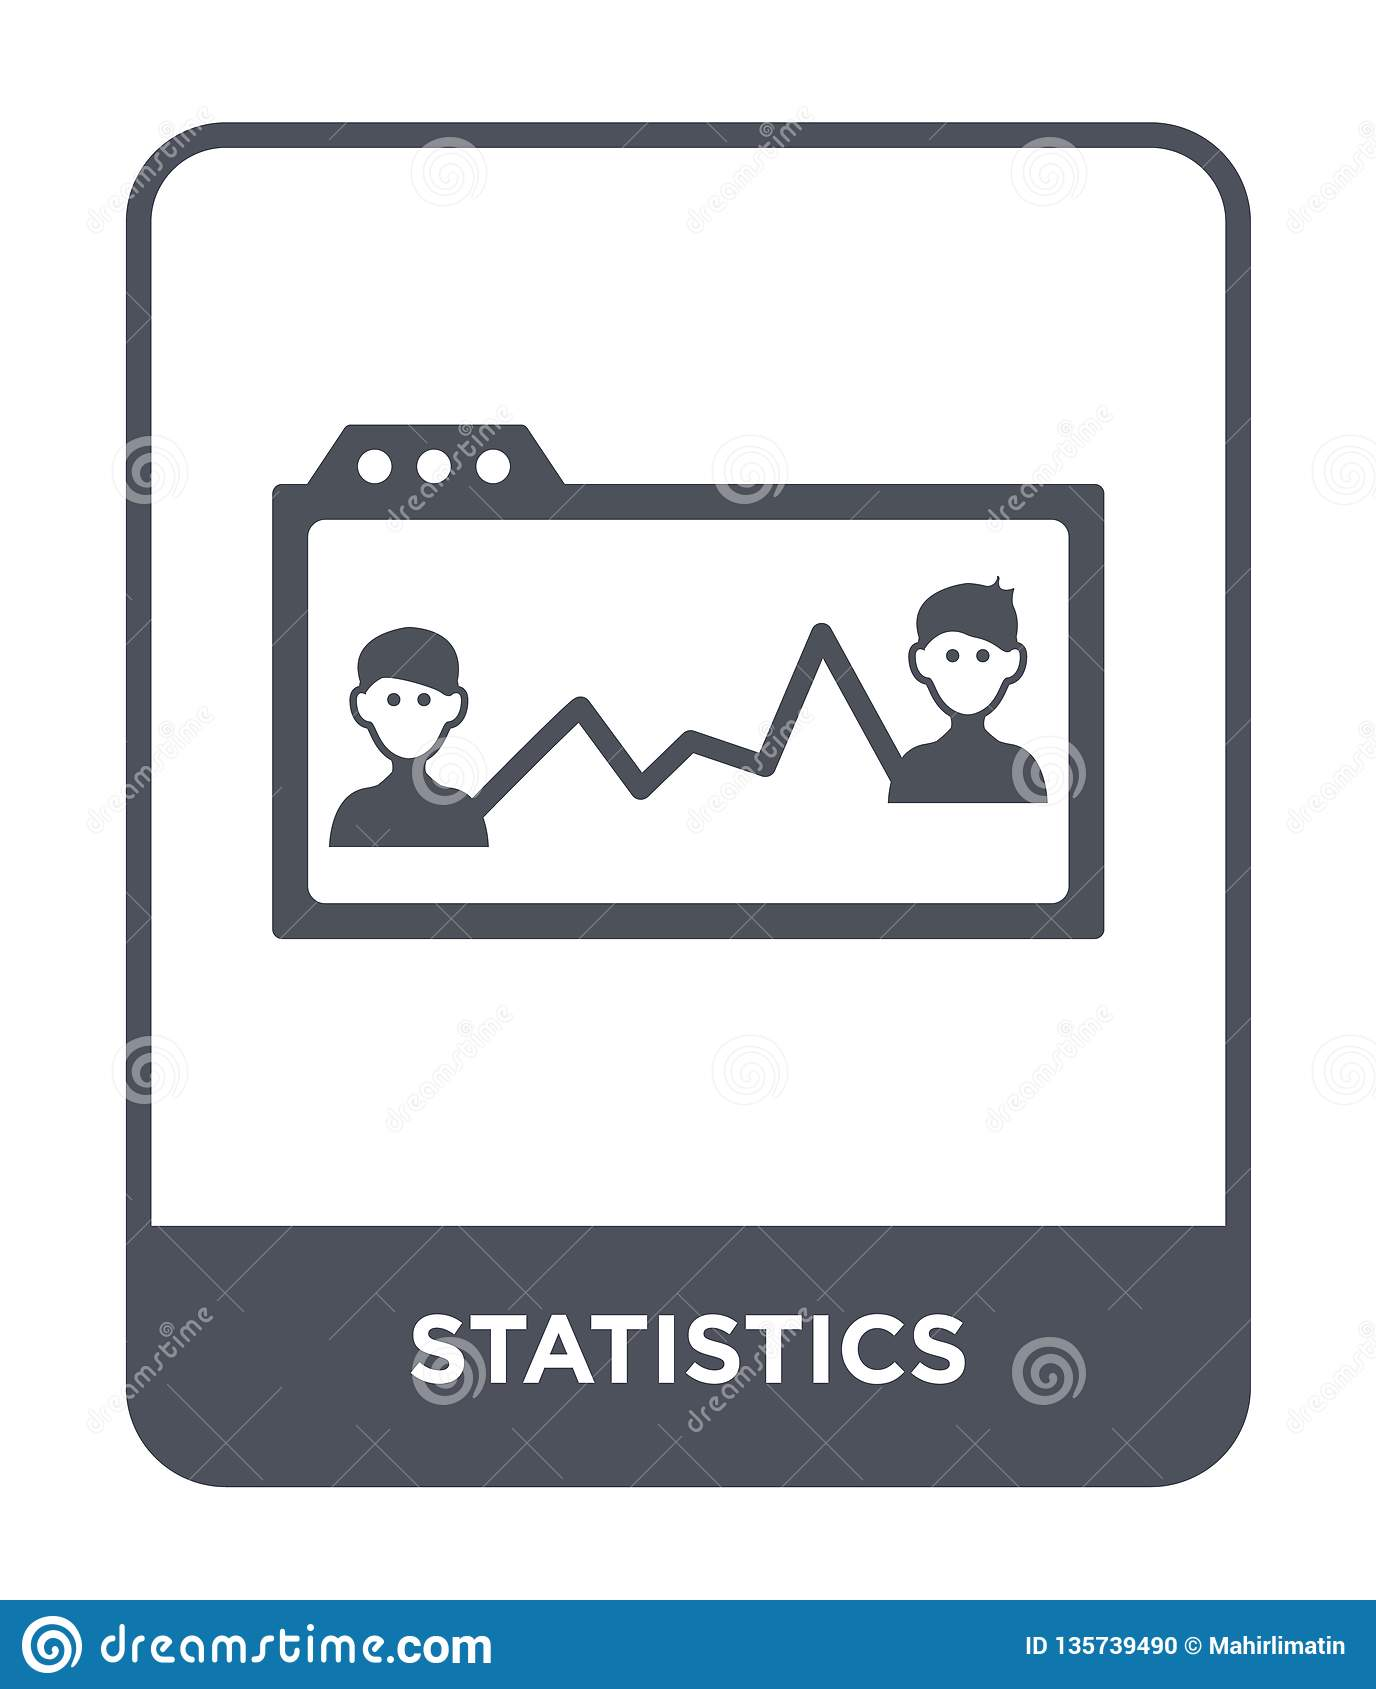 statistics icon in trendy design style. statistics icon isolated on white background. statistics vector icon simple and modern